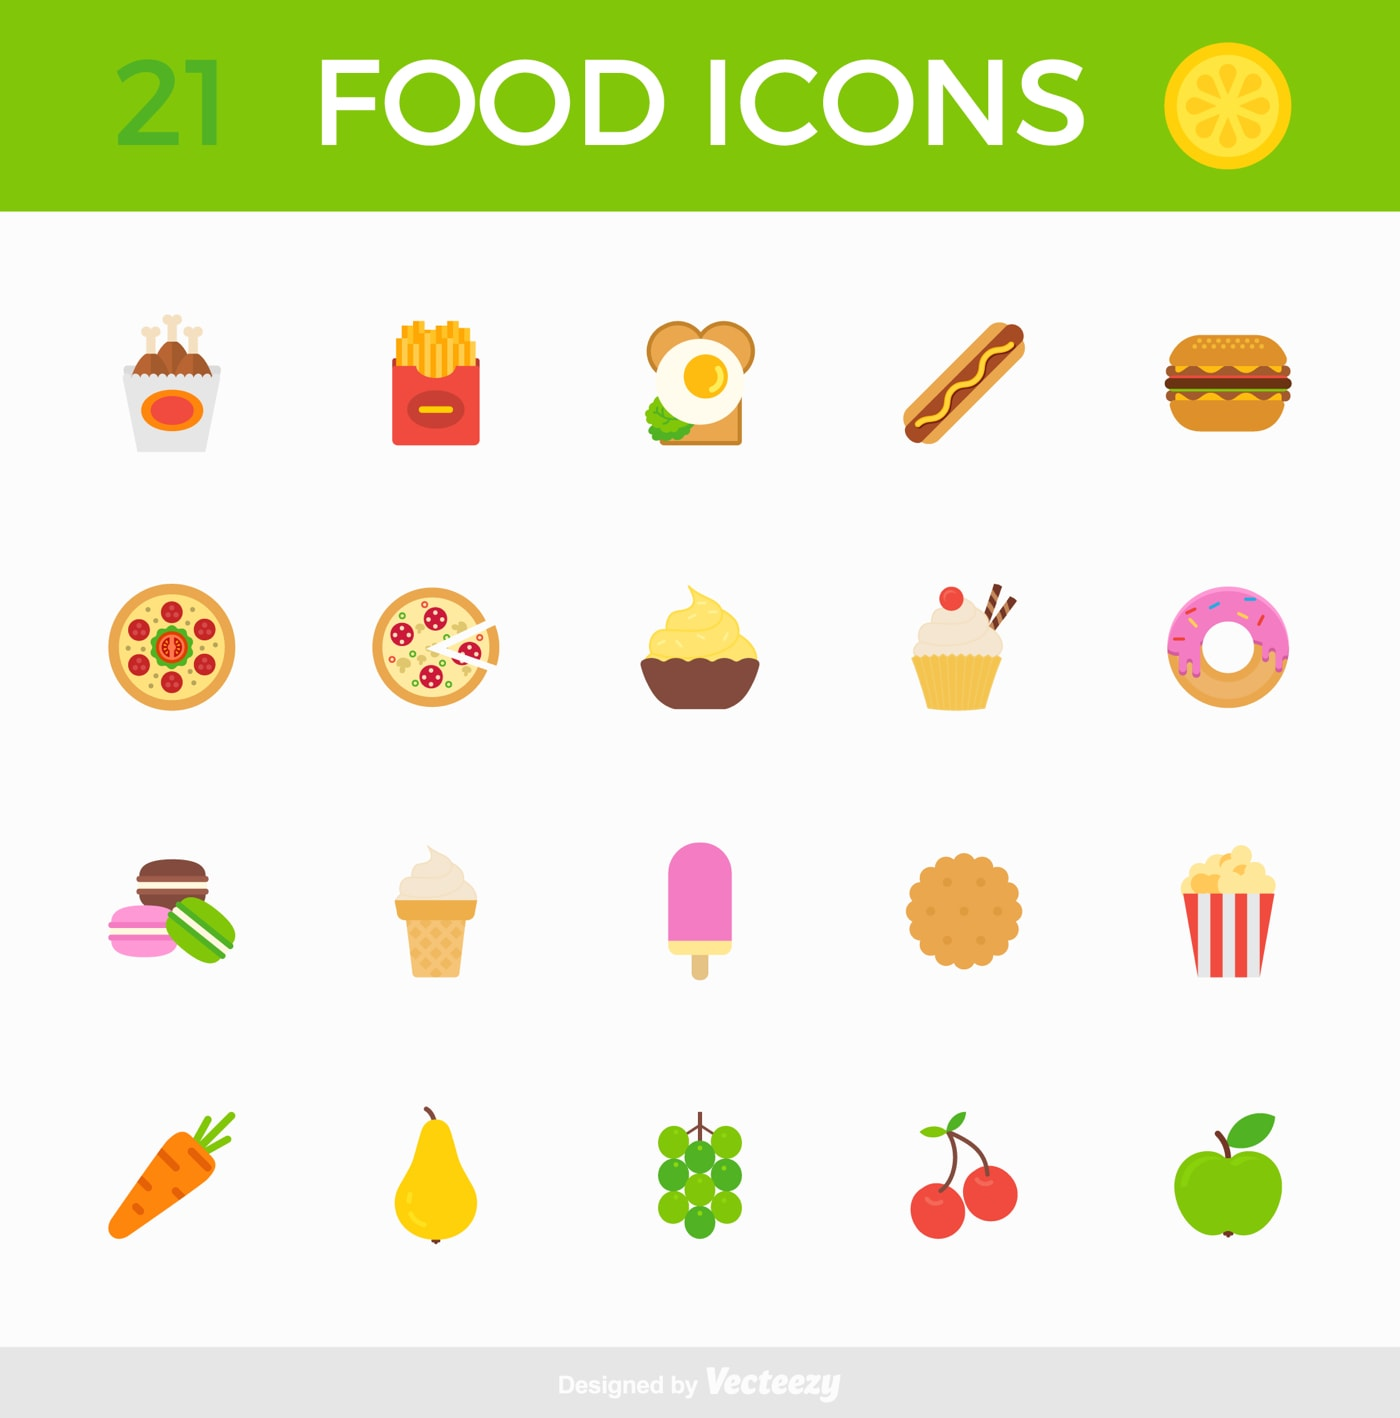 Tasty Food Free Icon Pack from UIGarage